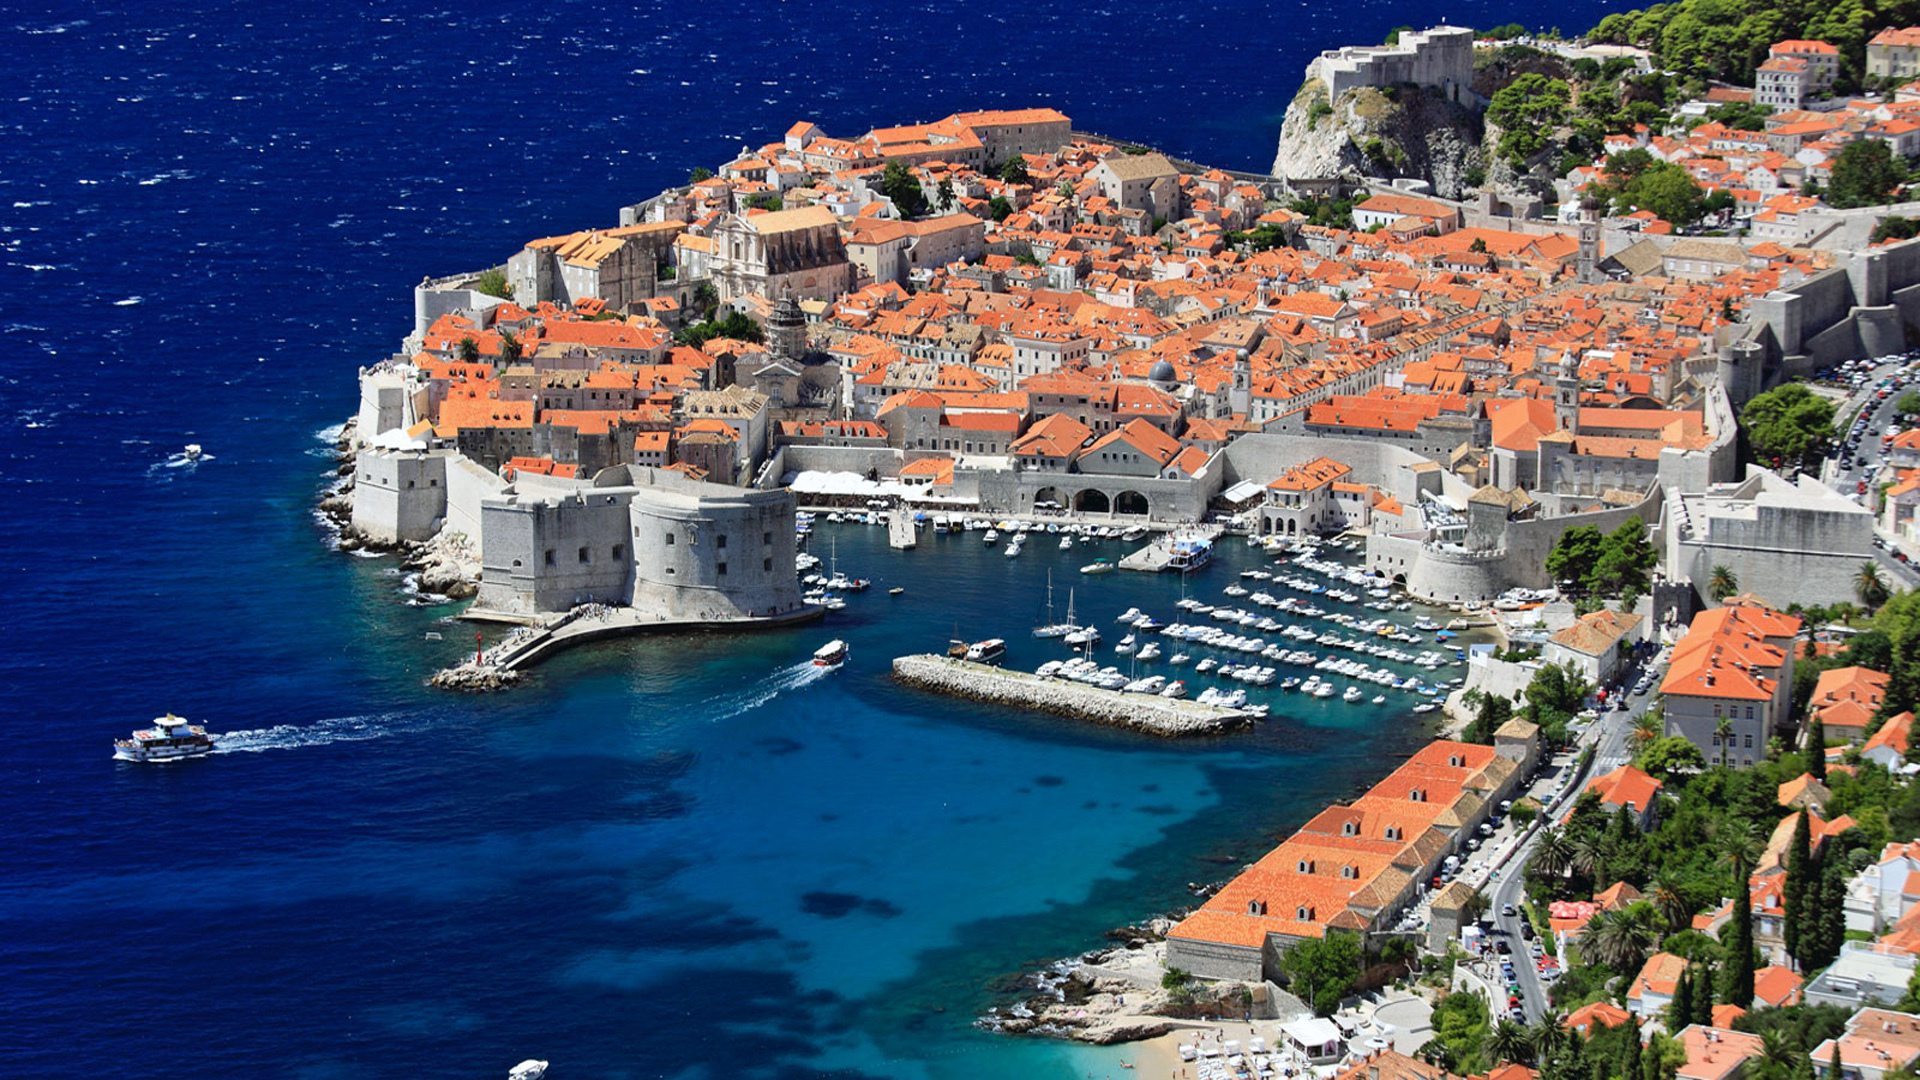 Dubrovnik Wallpapers Images Photos Pictures Backgrounds